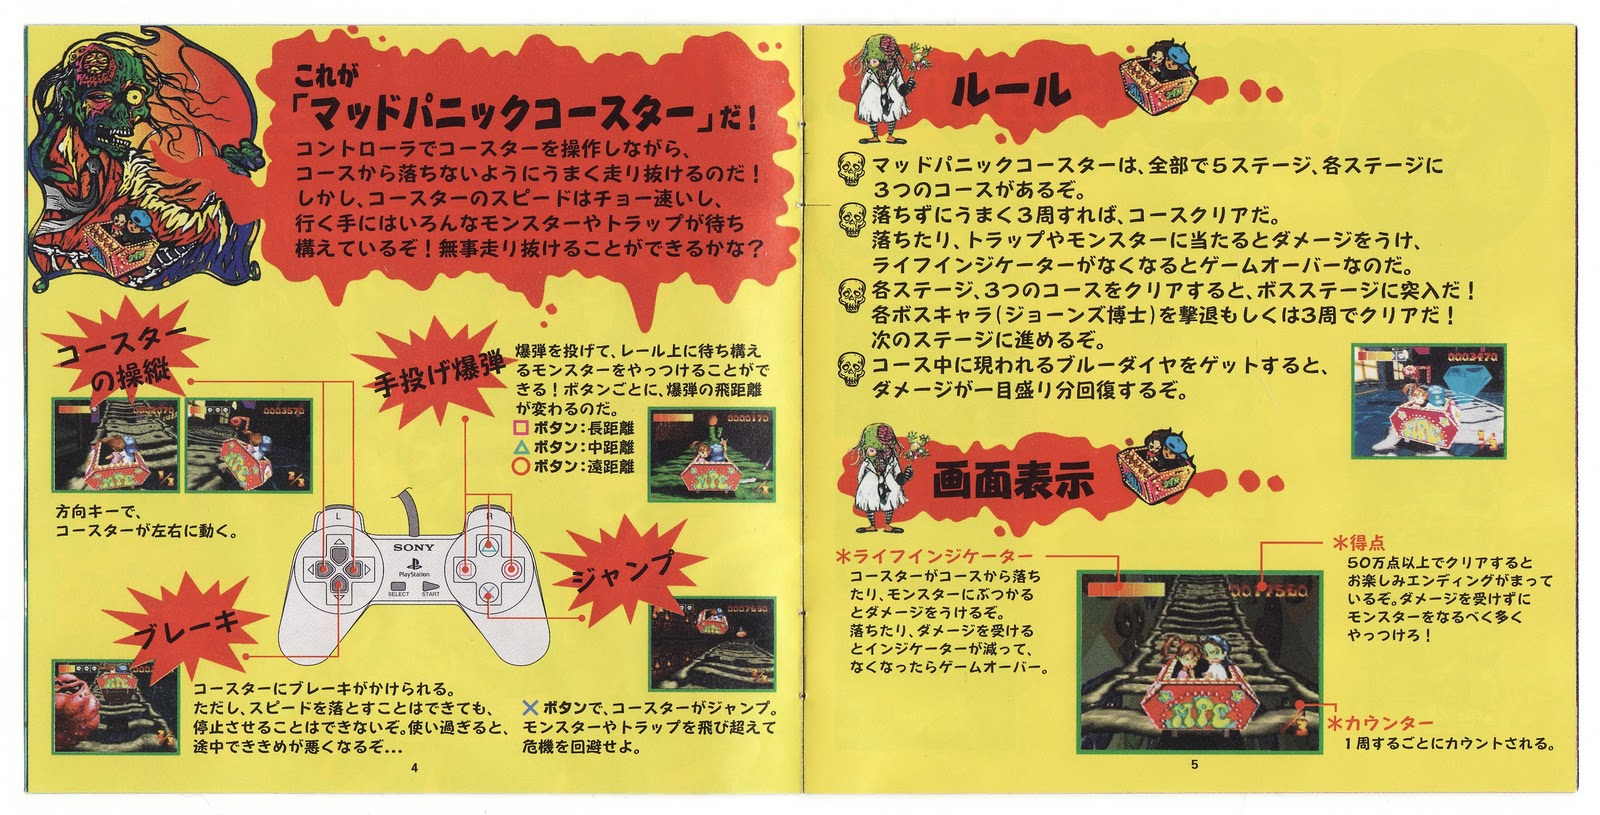 The Gay Gamer Mad Panic Coasters Awesome Manual